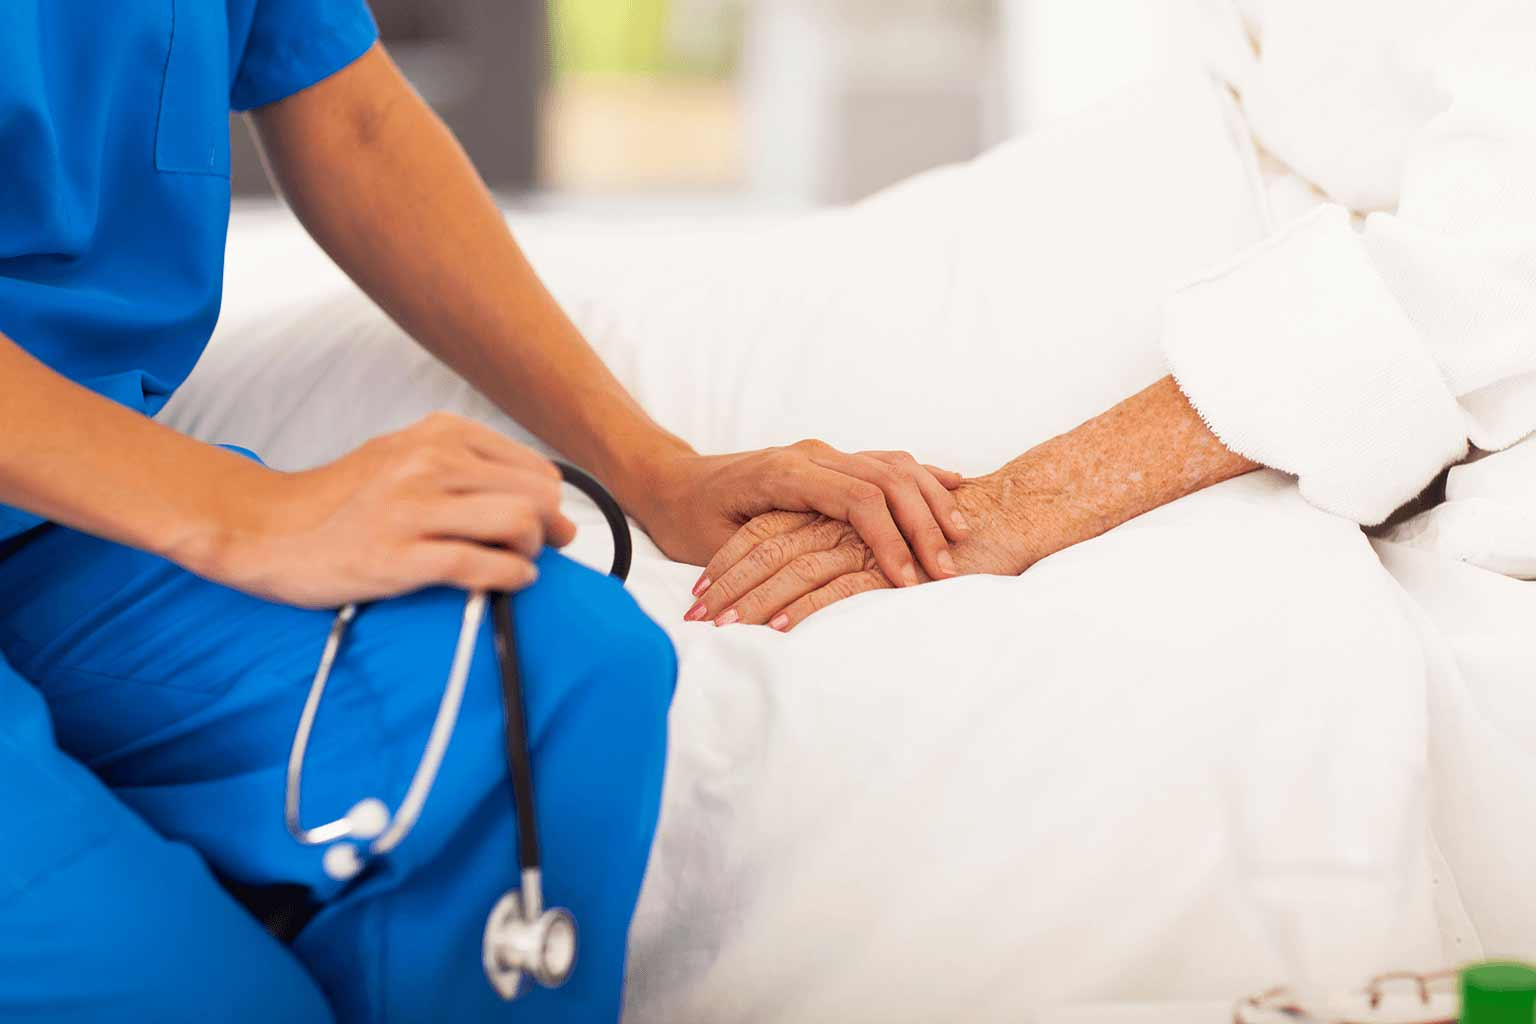 female-nurse-holding-patients-hand-while-in-hospital-bed